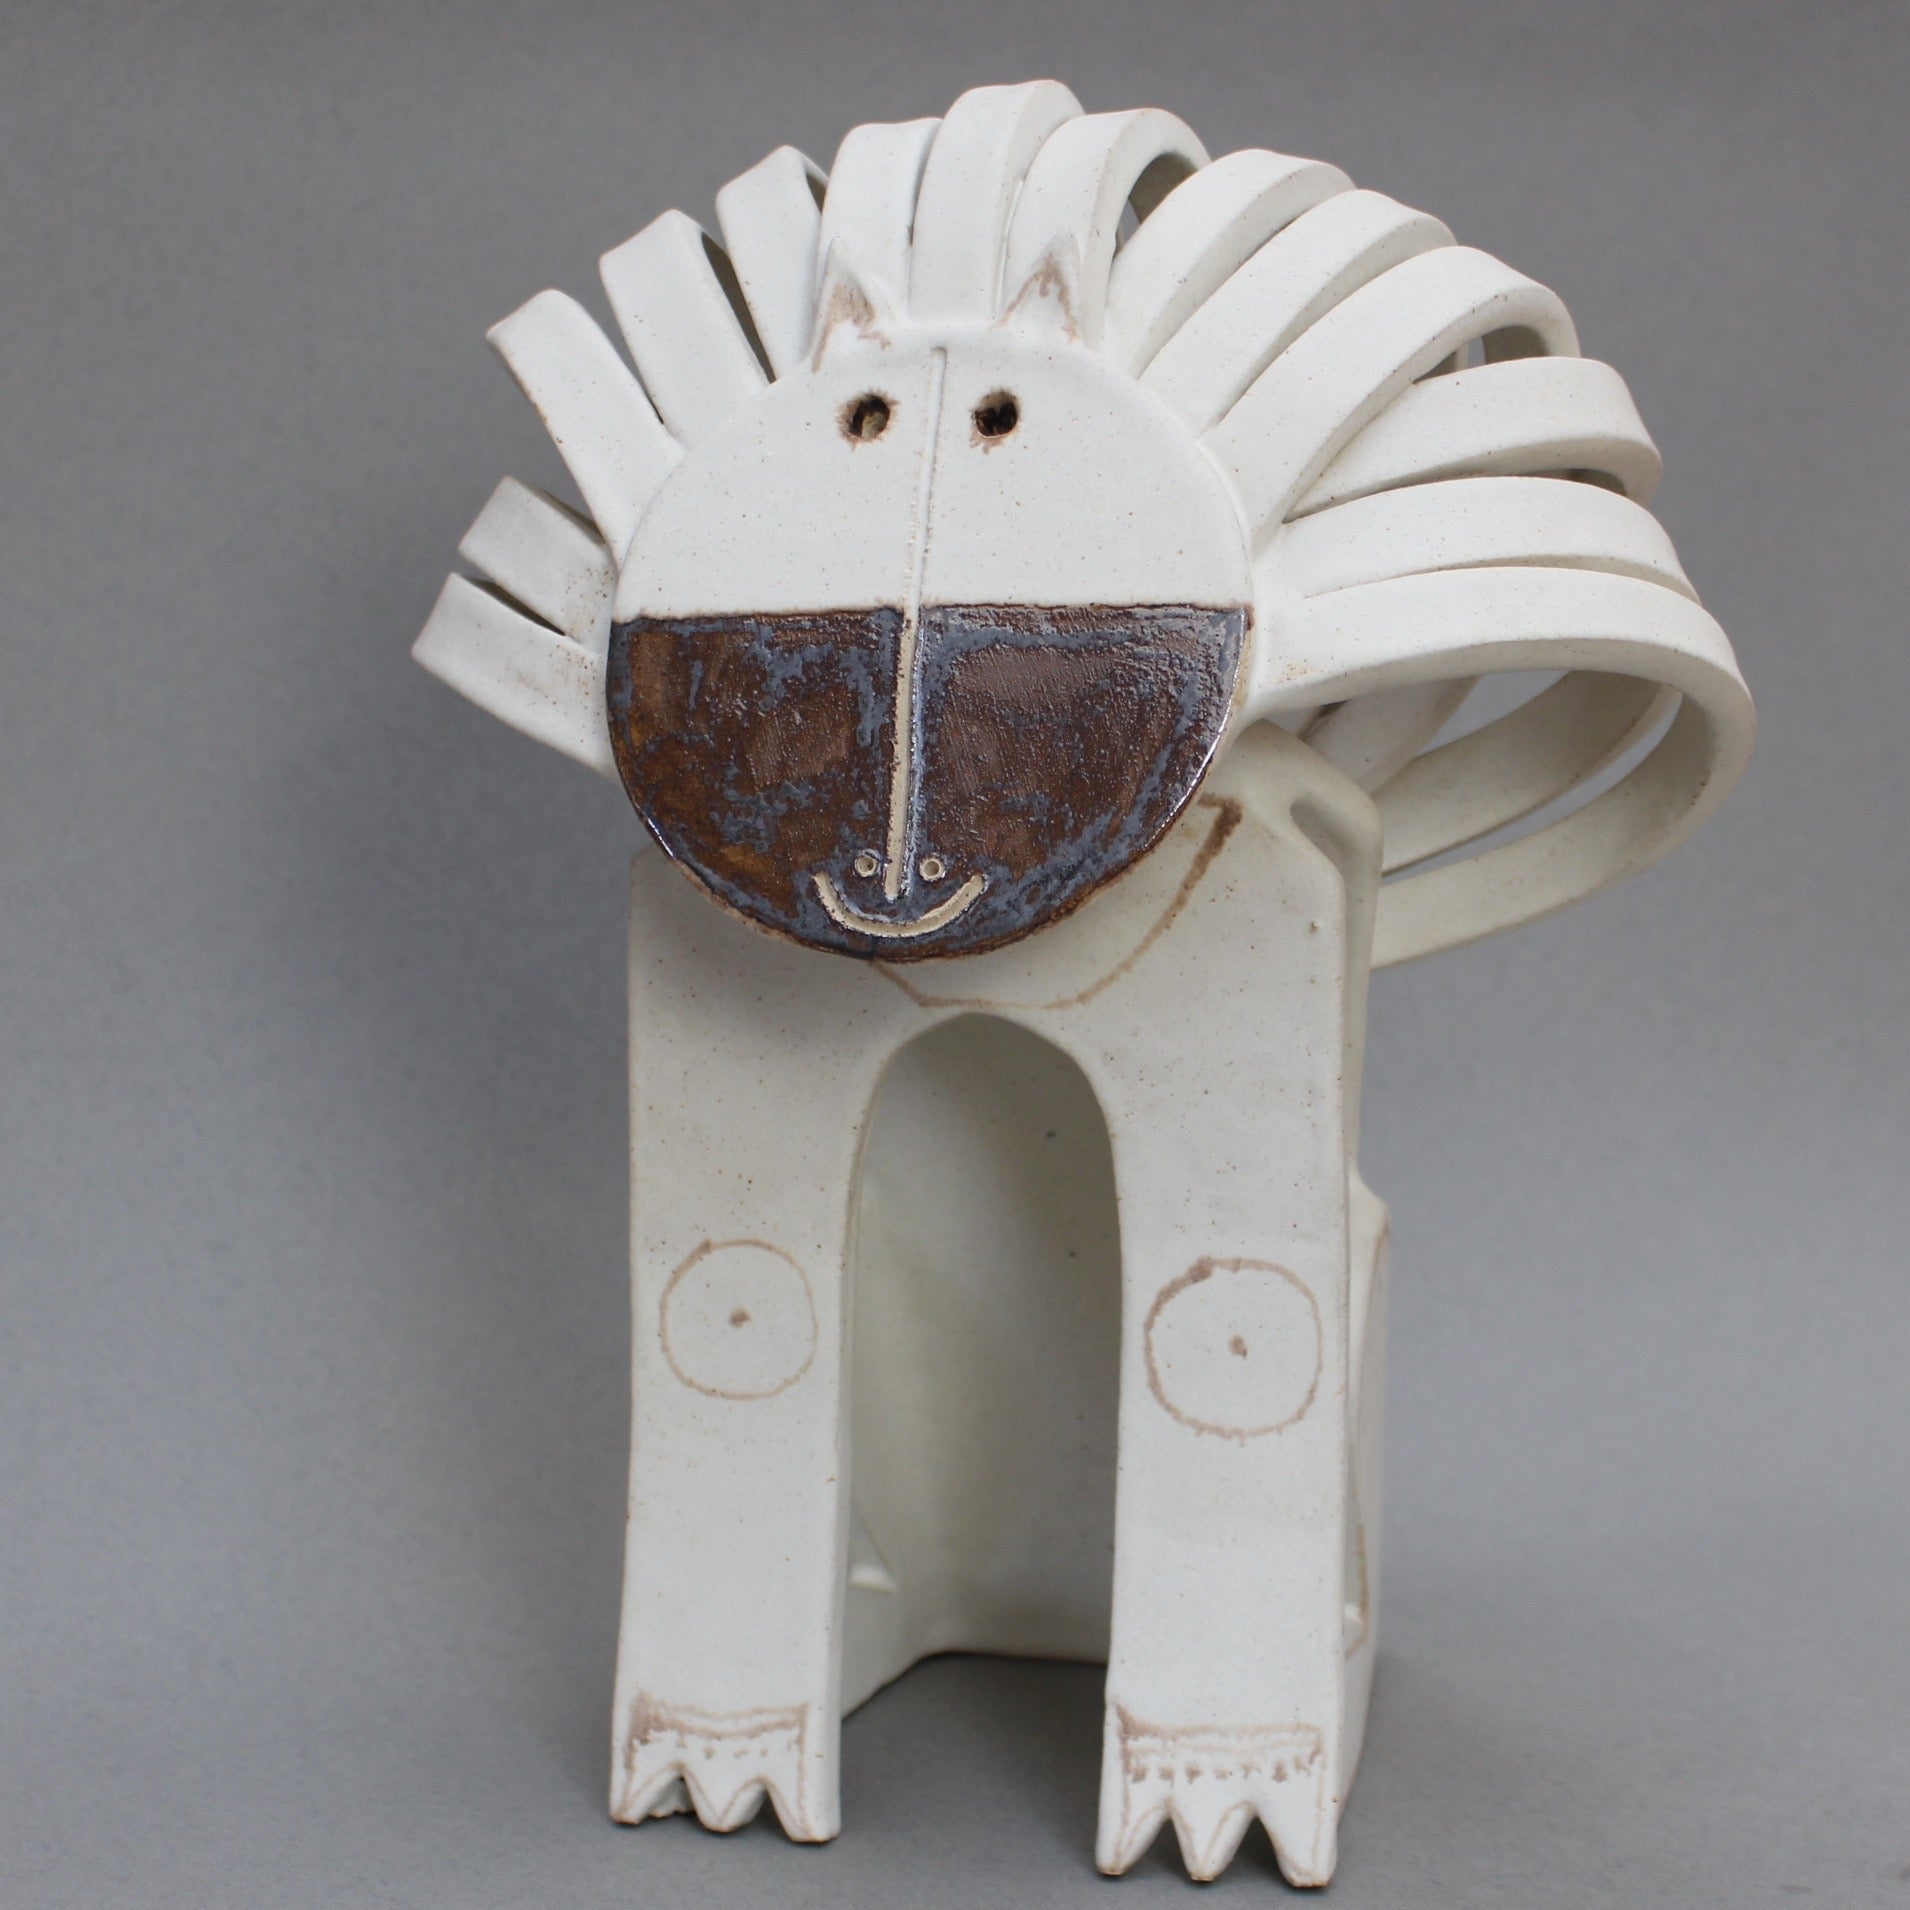 'Ceramic Lion Sculpture' by Bruno Gambone (c. 1970s)